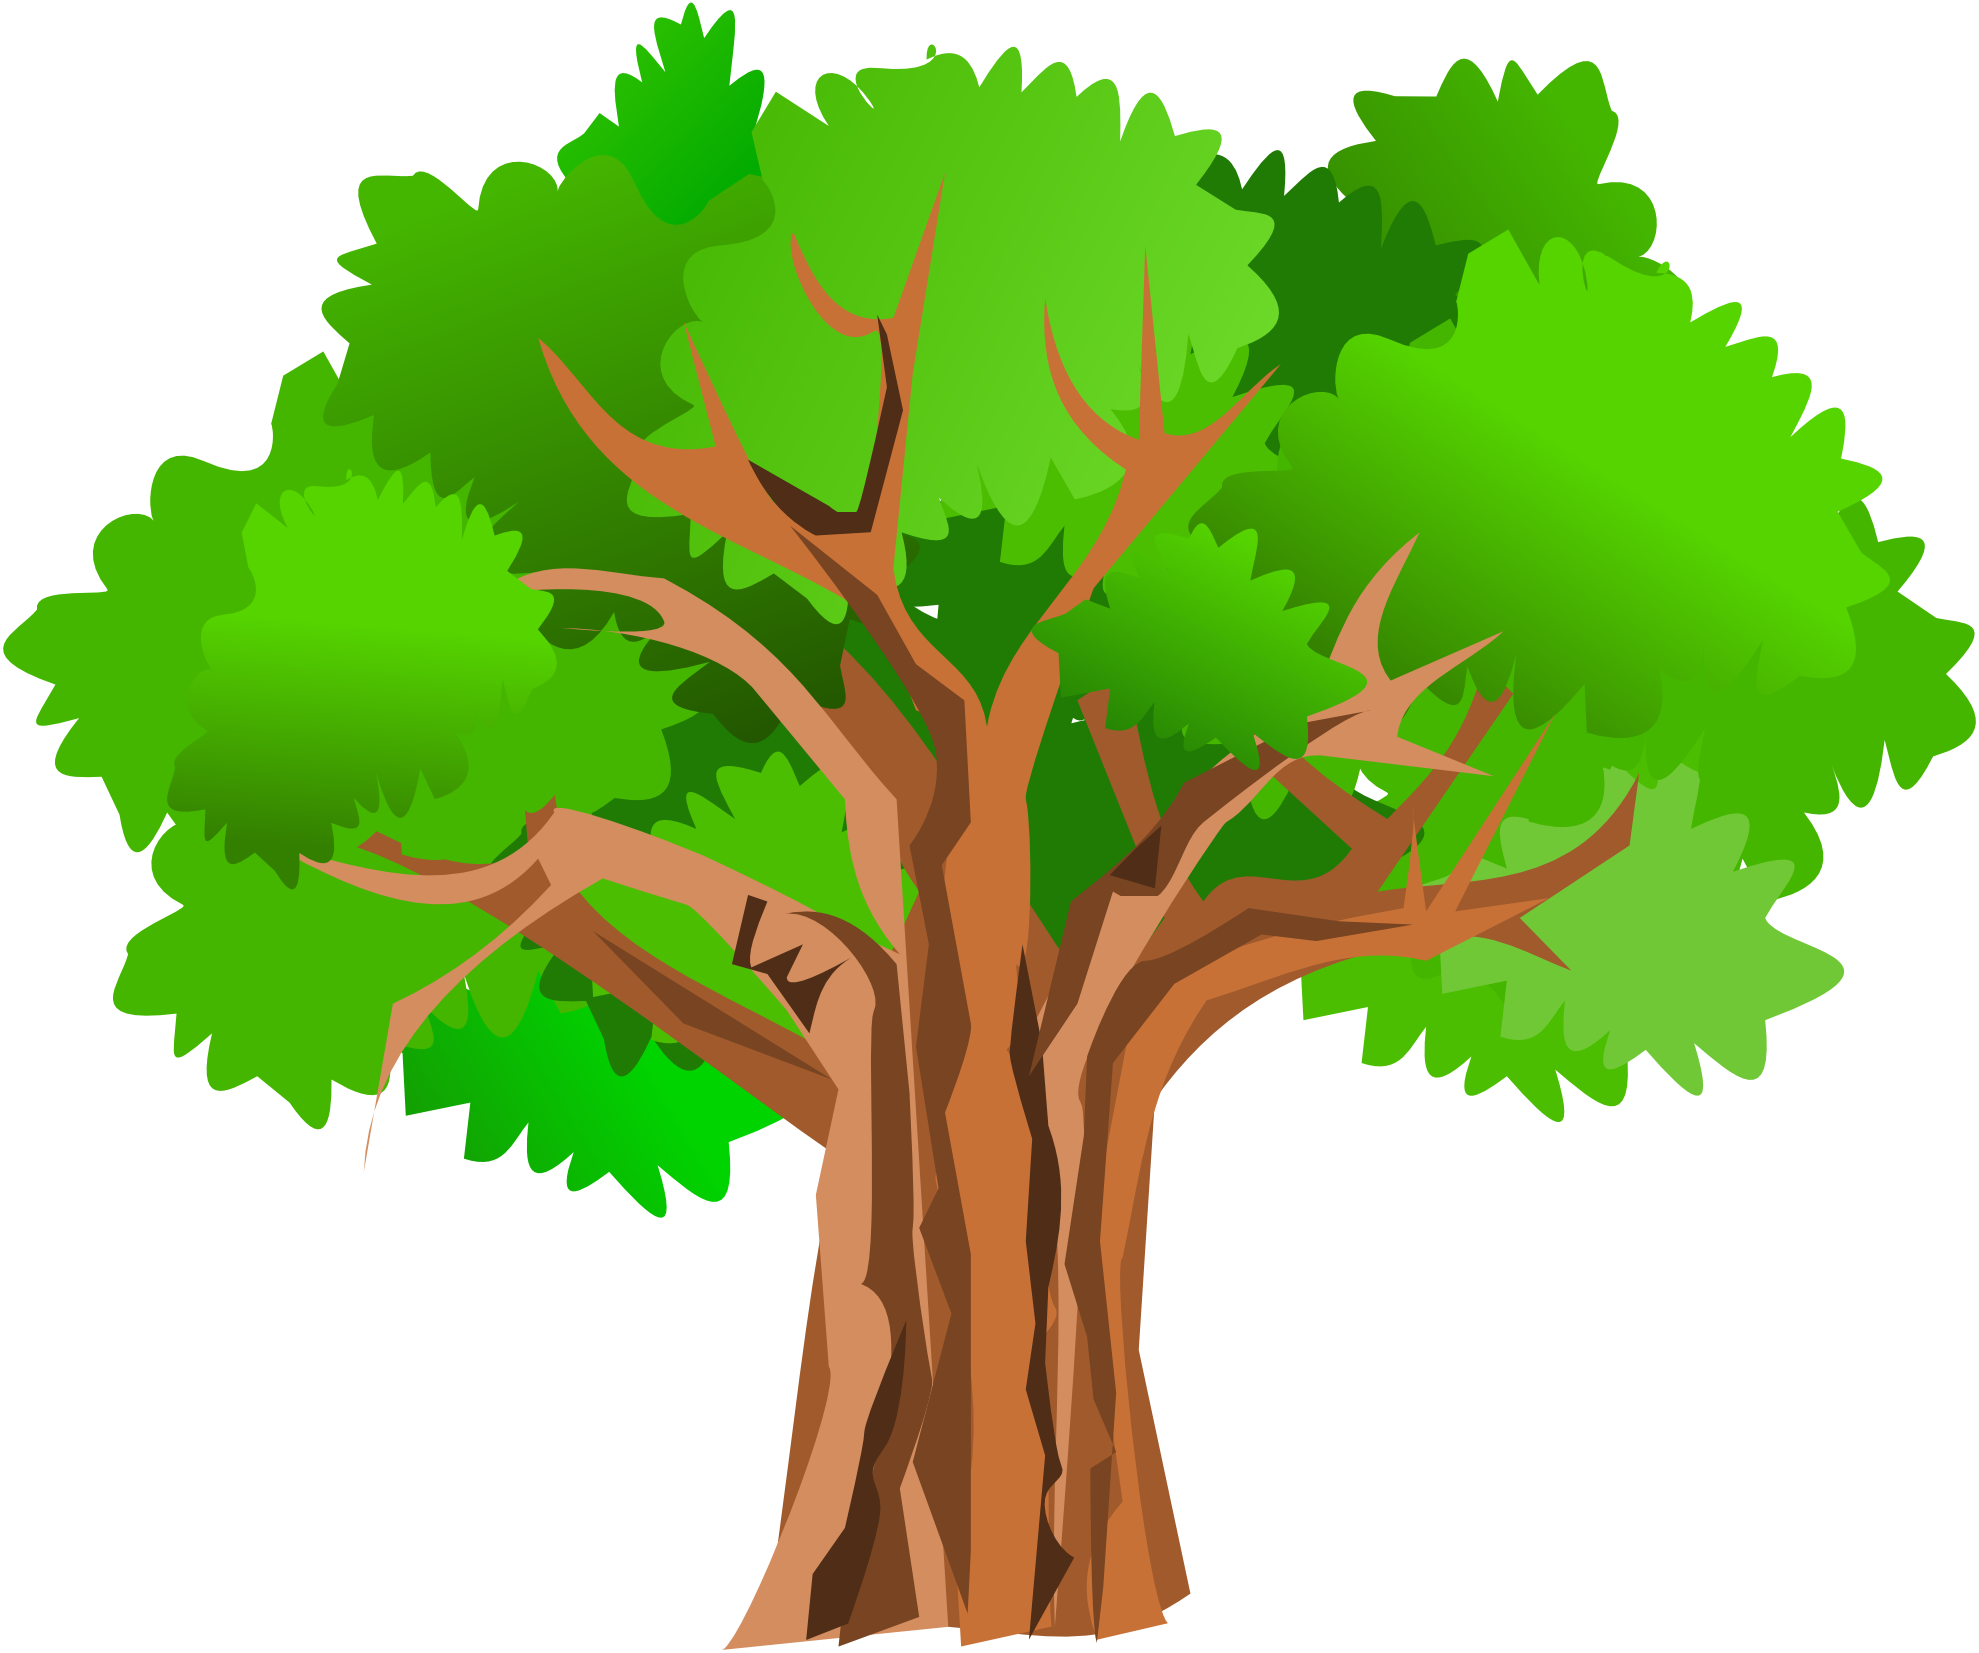 Family tree clipart images vector royalty free library trees art | Family Tree Clip Art | trees | Pinterest | Tree art ... vector royalty free library